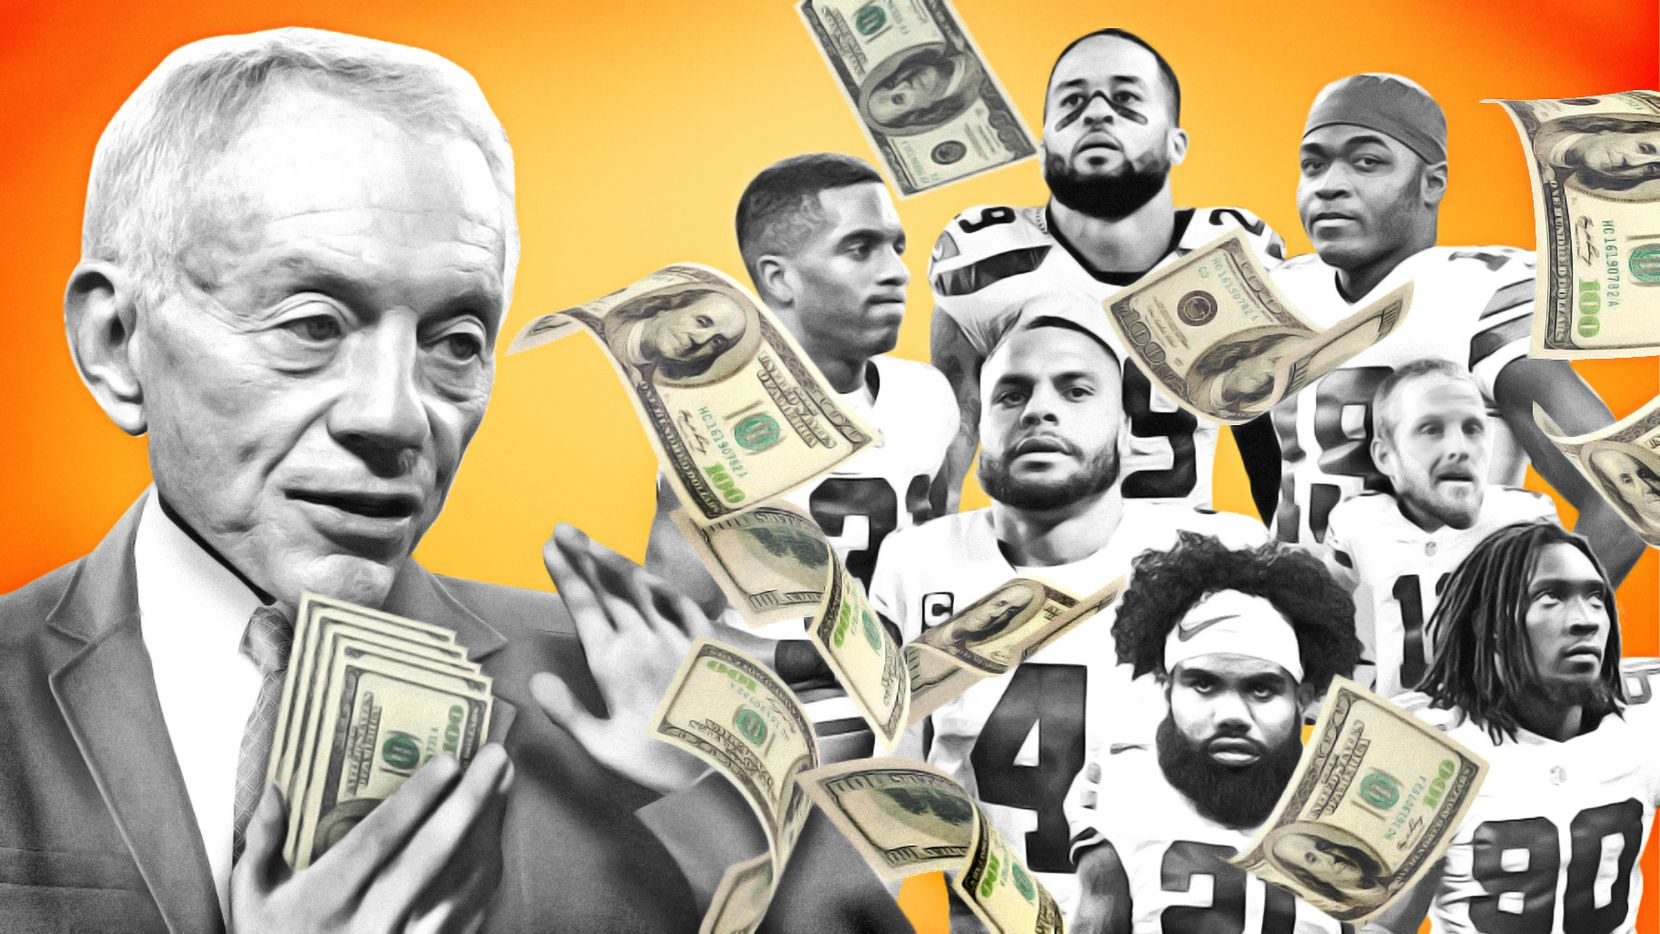 The Dallas Cowboys find themselves at a financial crossroads.